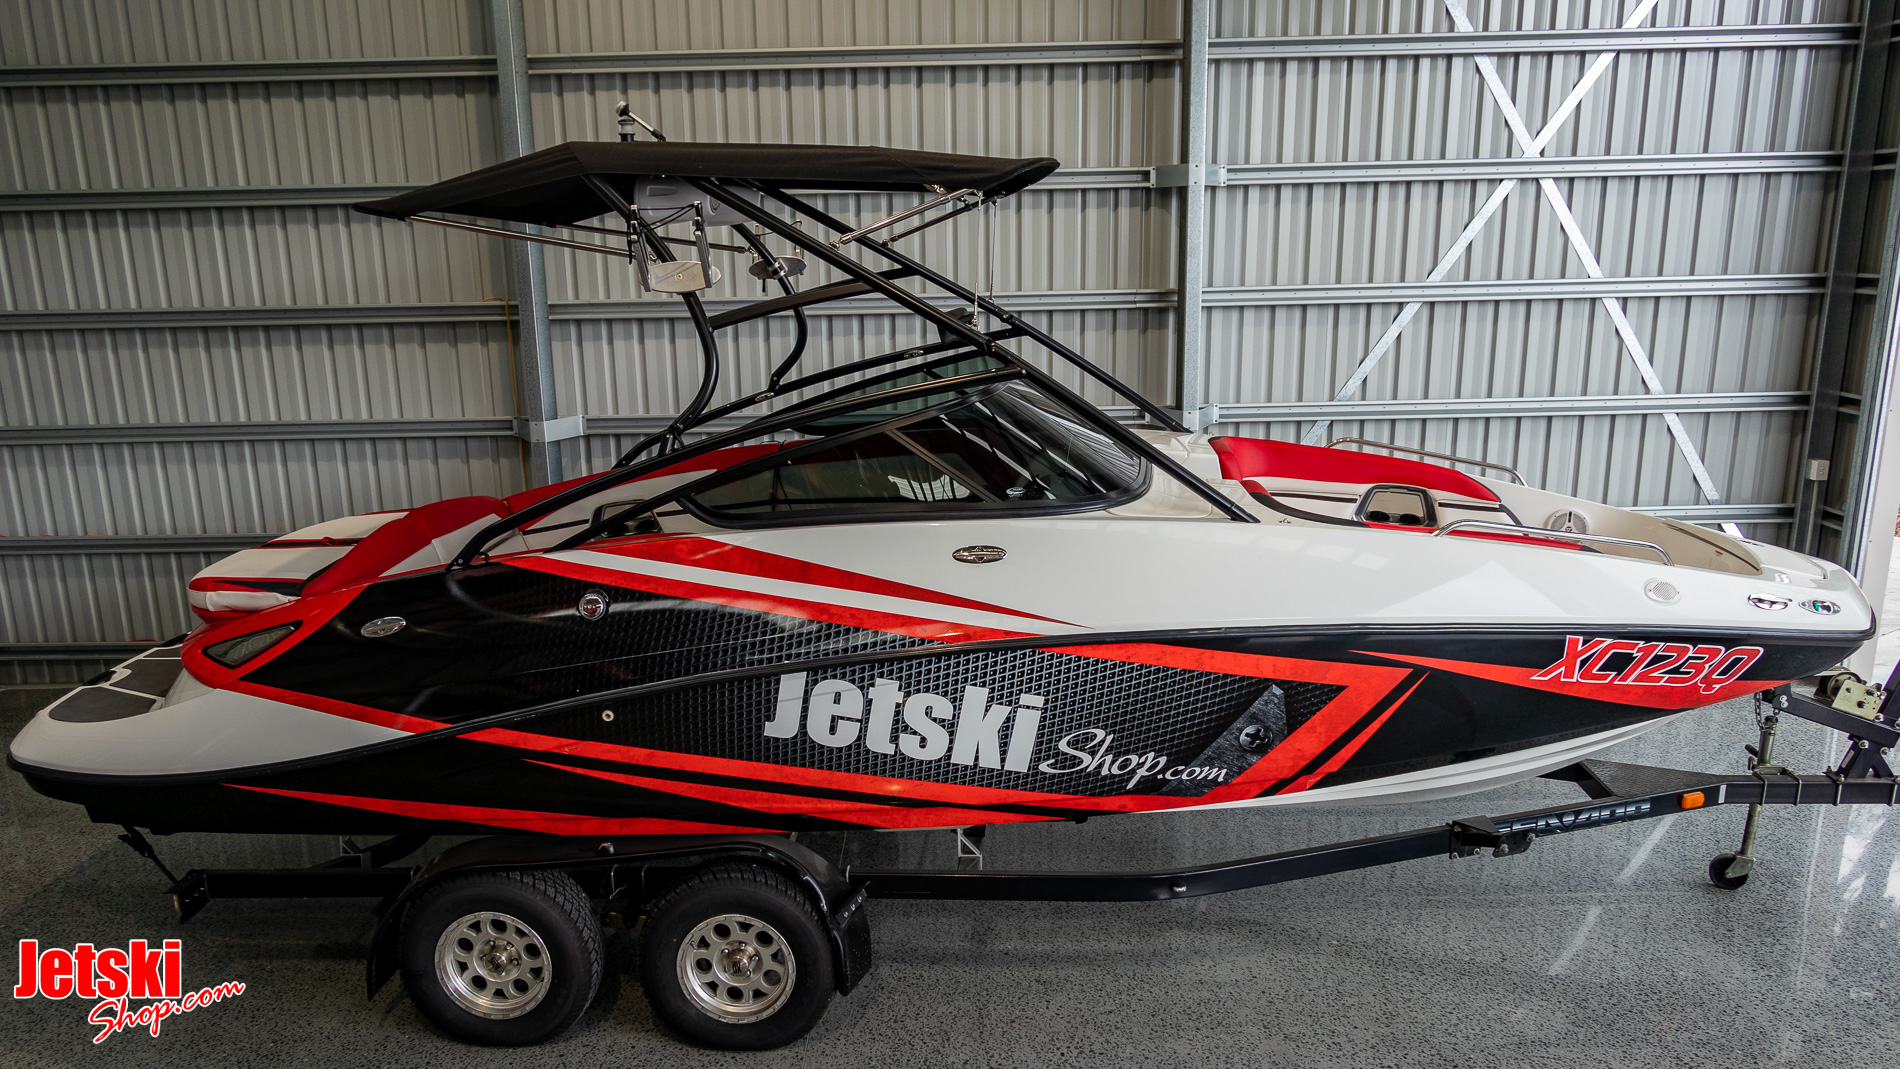 Sea-Doo Speedster 230 WAKE - Jetskishop com